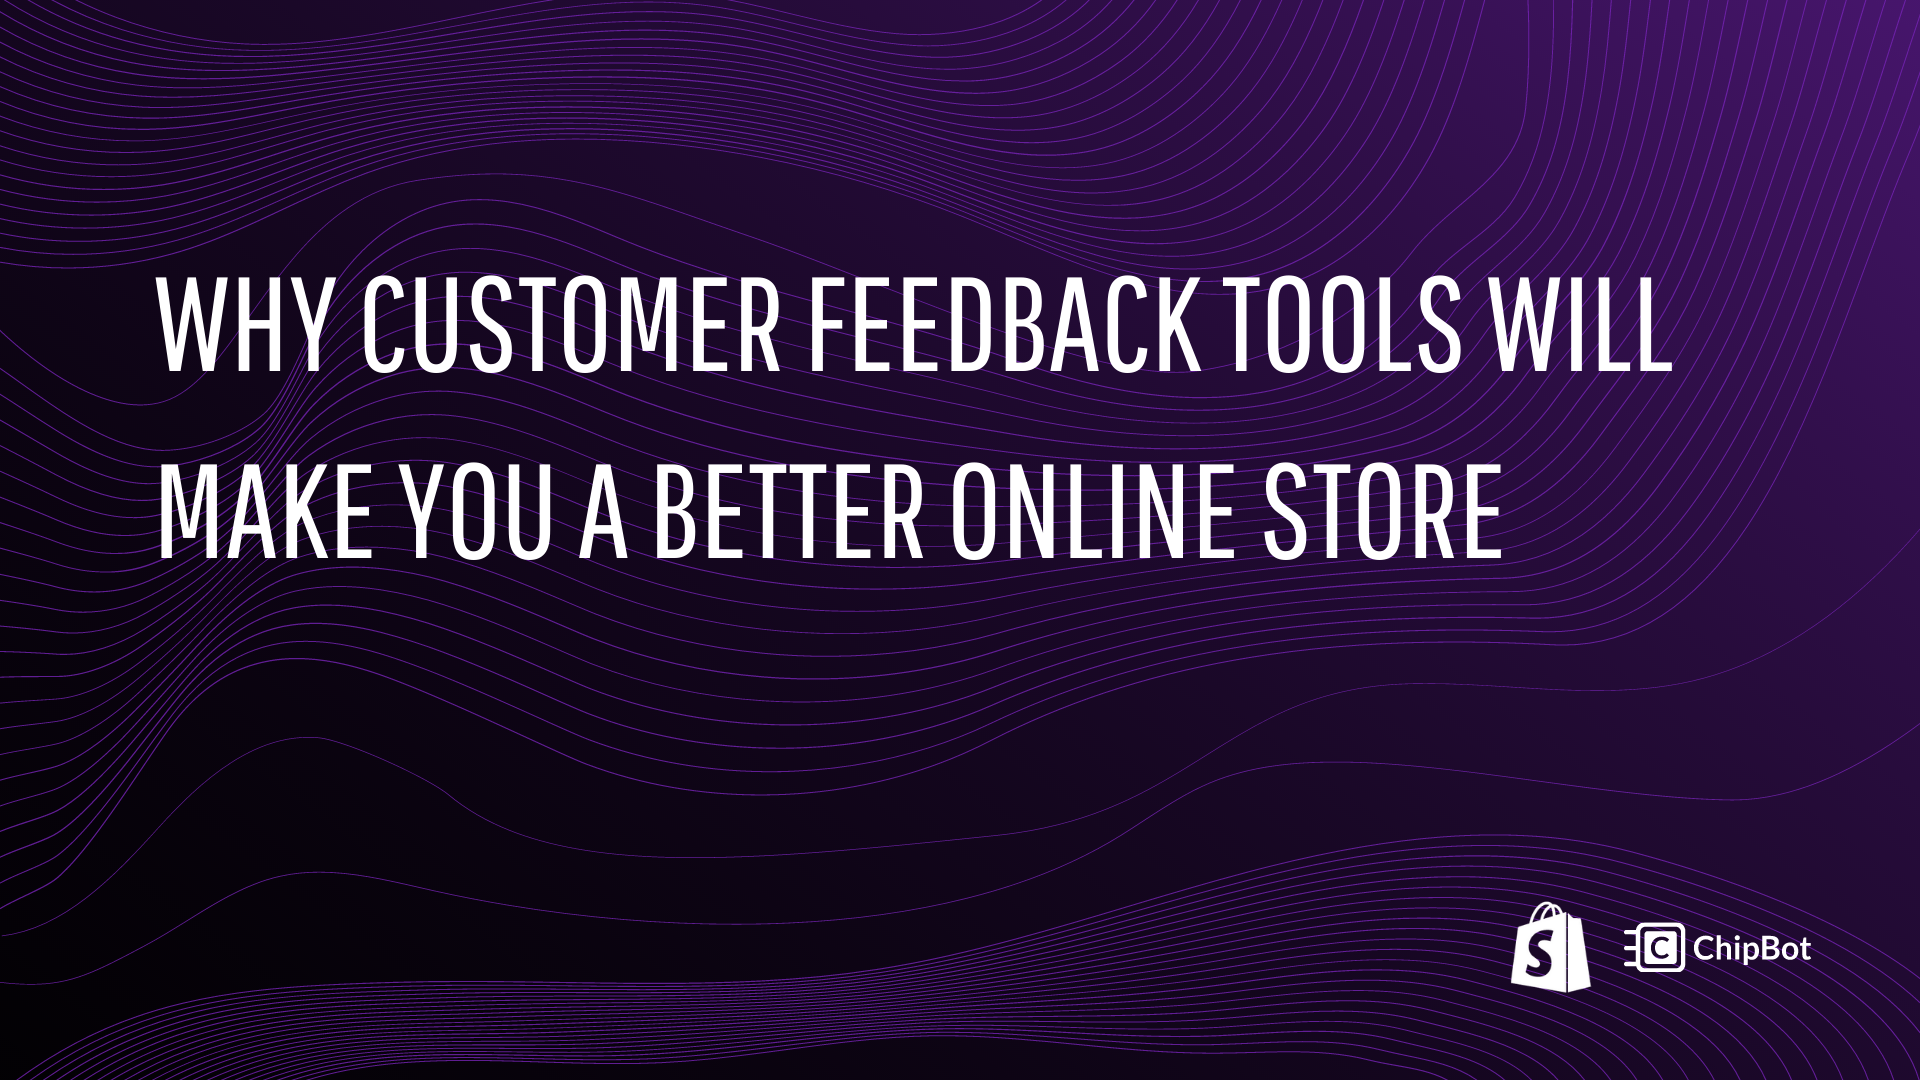 Why Customer Feedback Tools Will Make You a Better Online Store